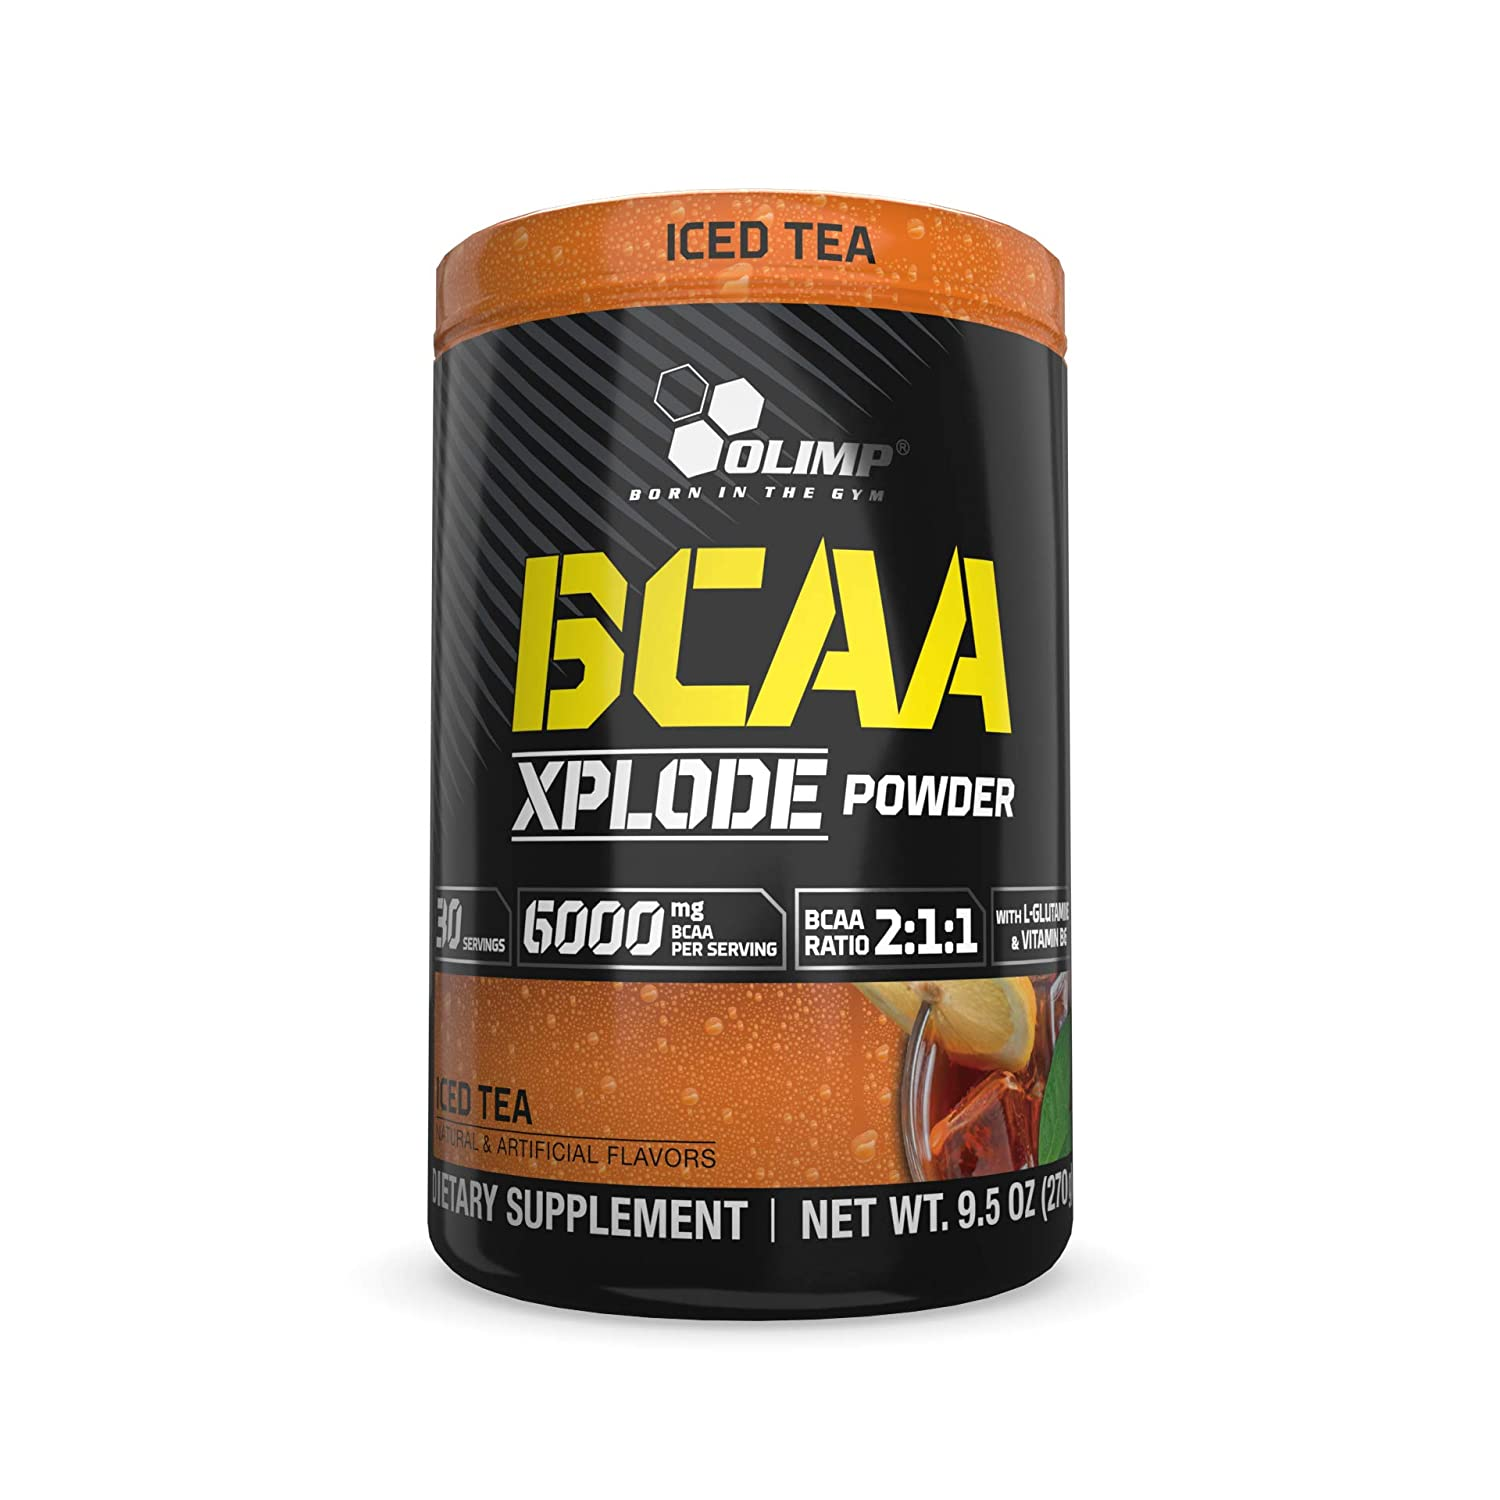 Olimp BCAA Xplode Amino Acids Powder – Pack of 9.5 oz – 30 Servings – Iced Tea Flavored – Recovery Supplement – L-Glutamine, Vitamine B6, Calcium, Sodium